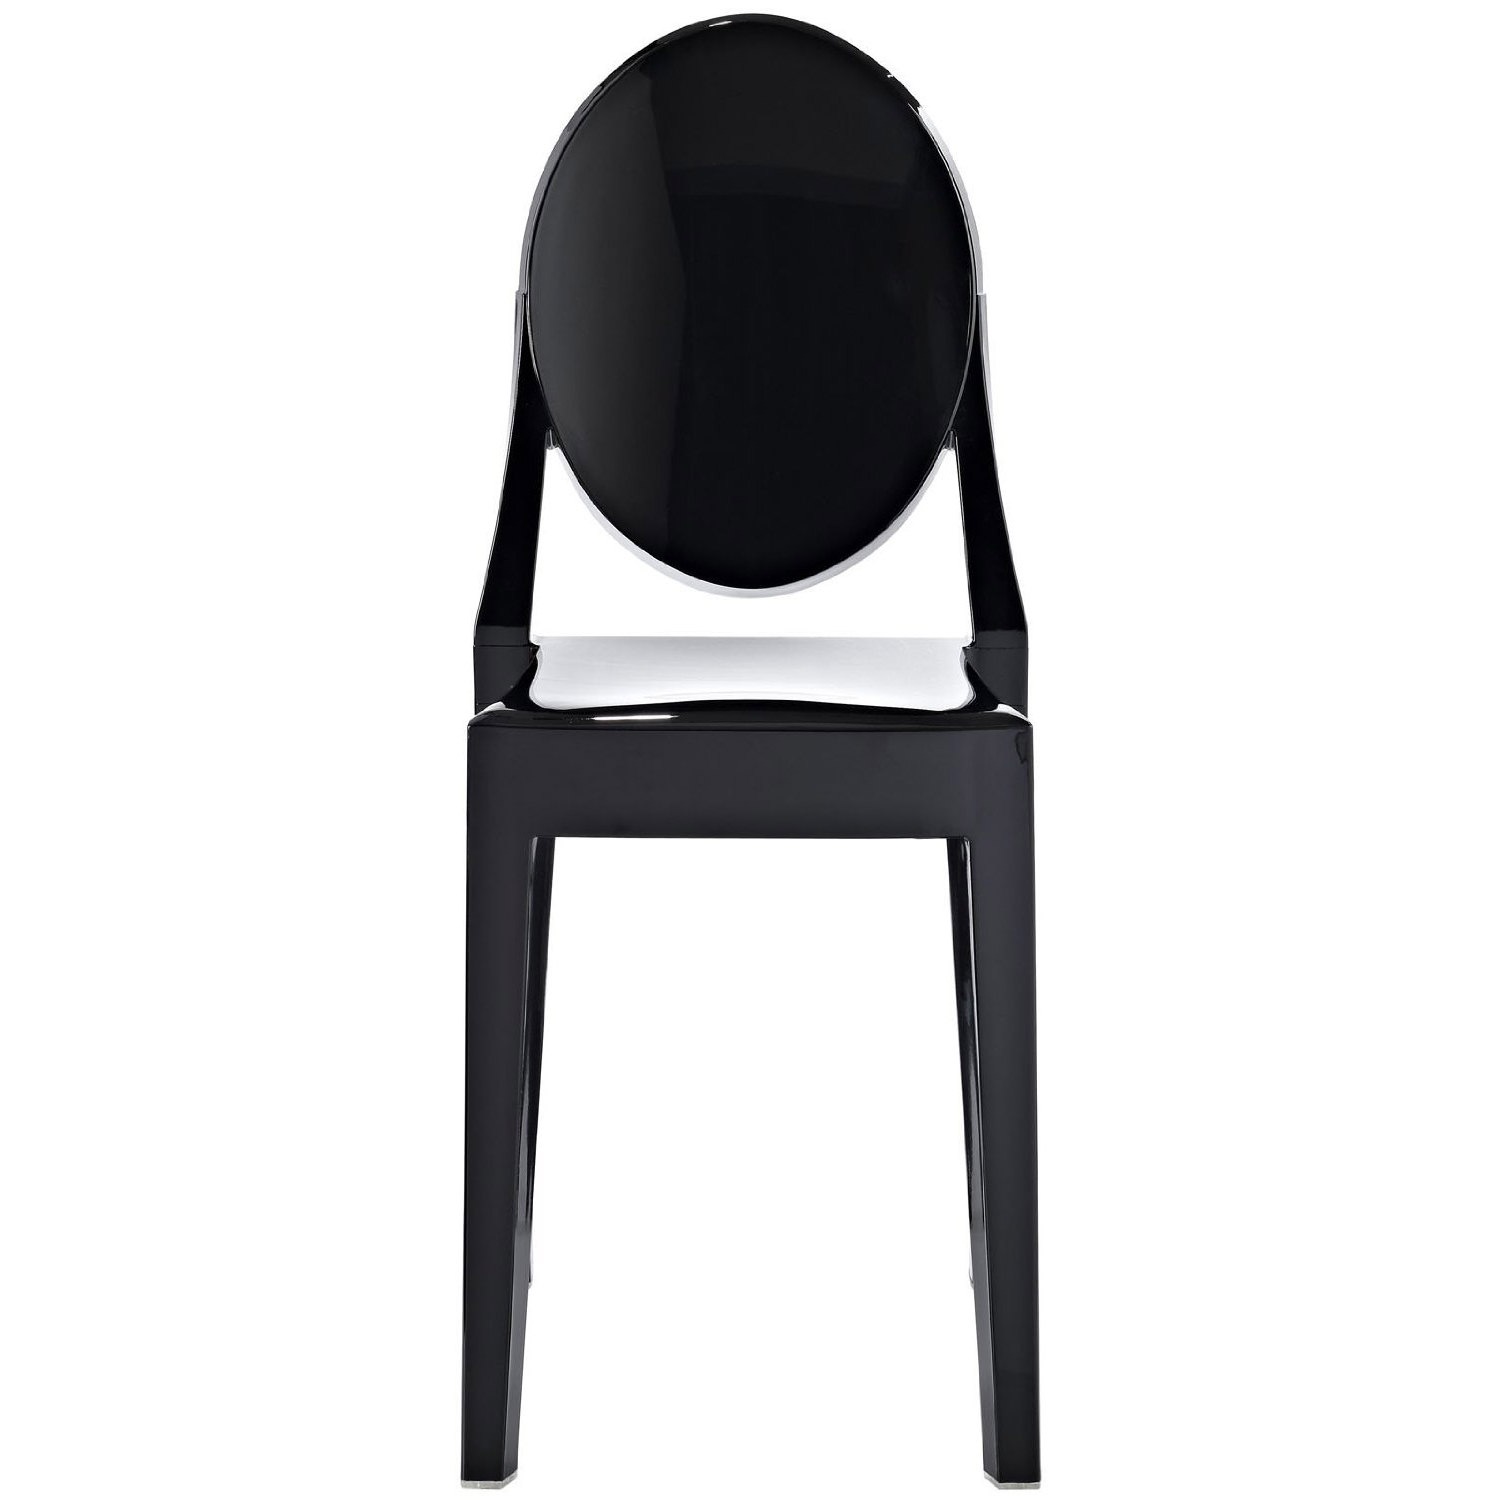 2xhome   Modern Plastic Chairs No Arm Armless For Stackable Dining Chairs  Black